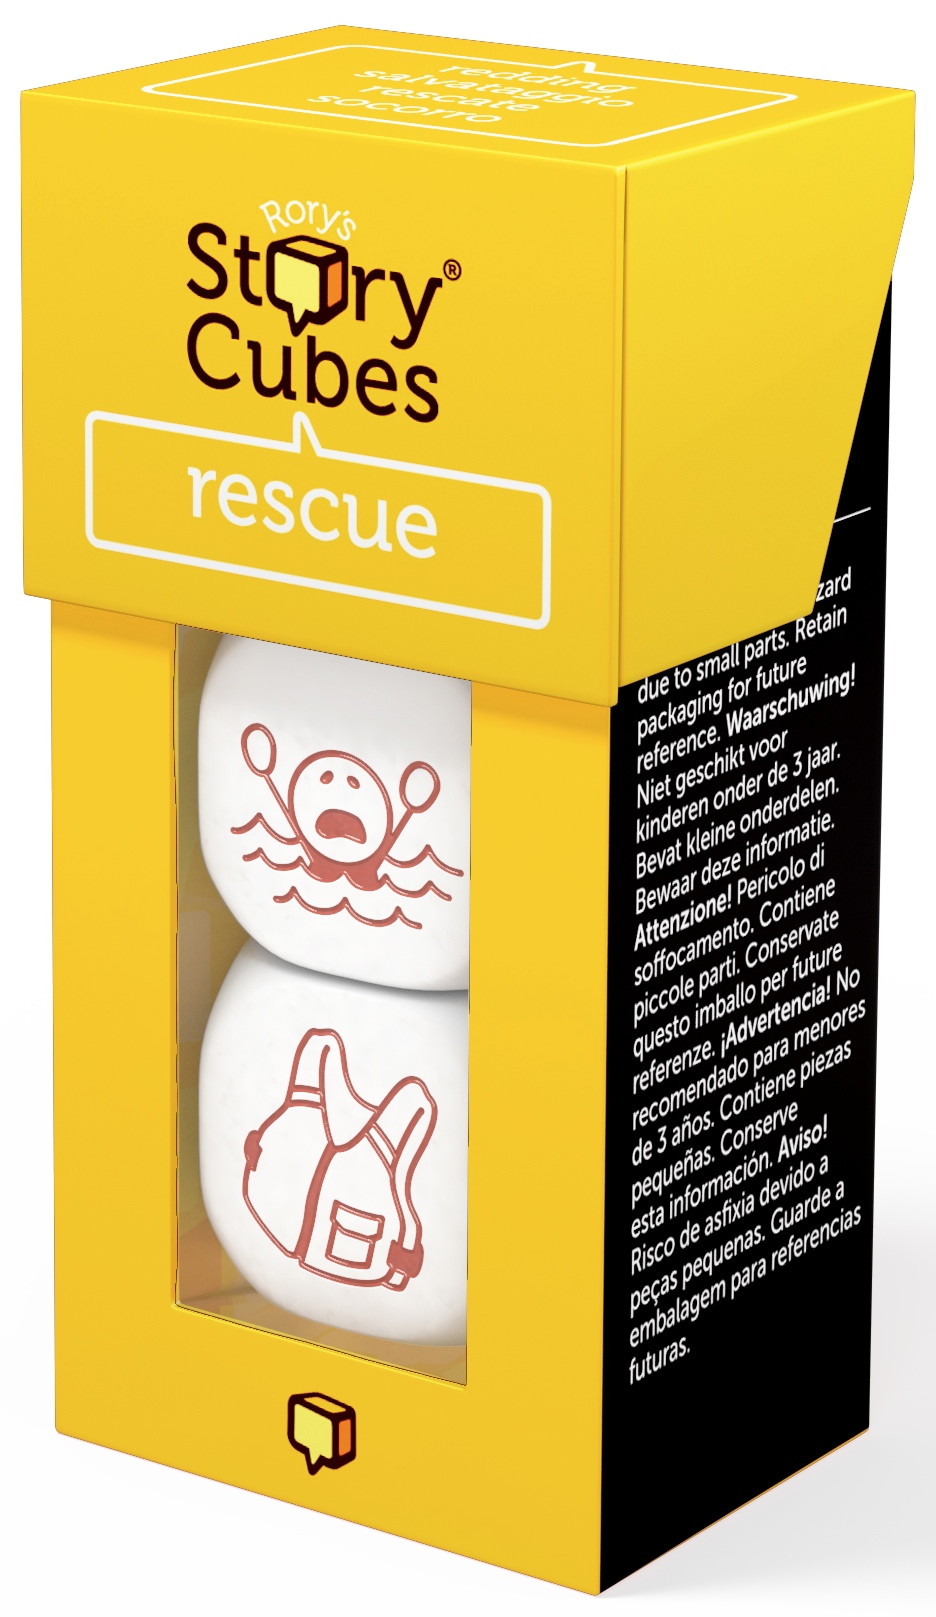 Rory story Cubes Mix Rescue